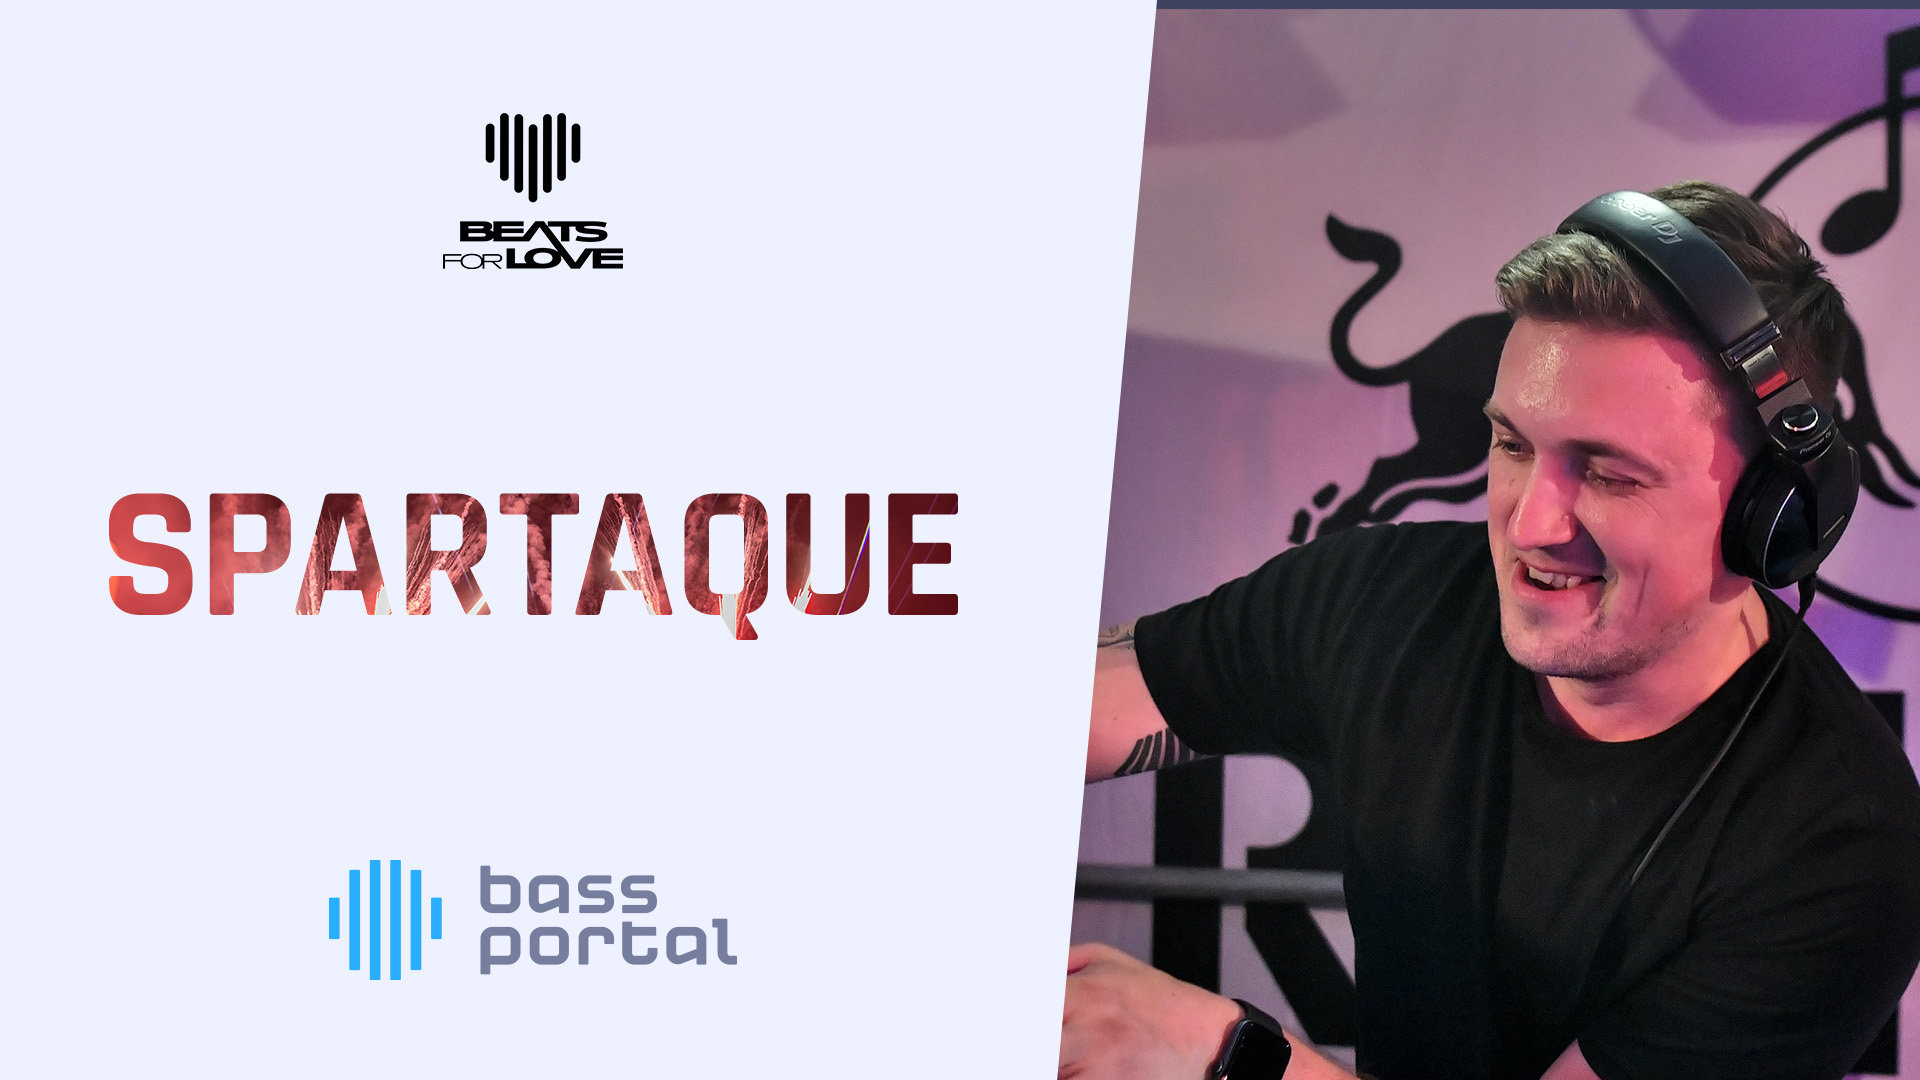 Spartaque - Beats for Love 2019